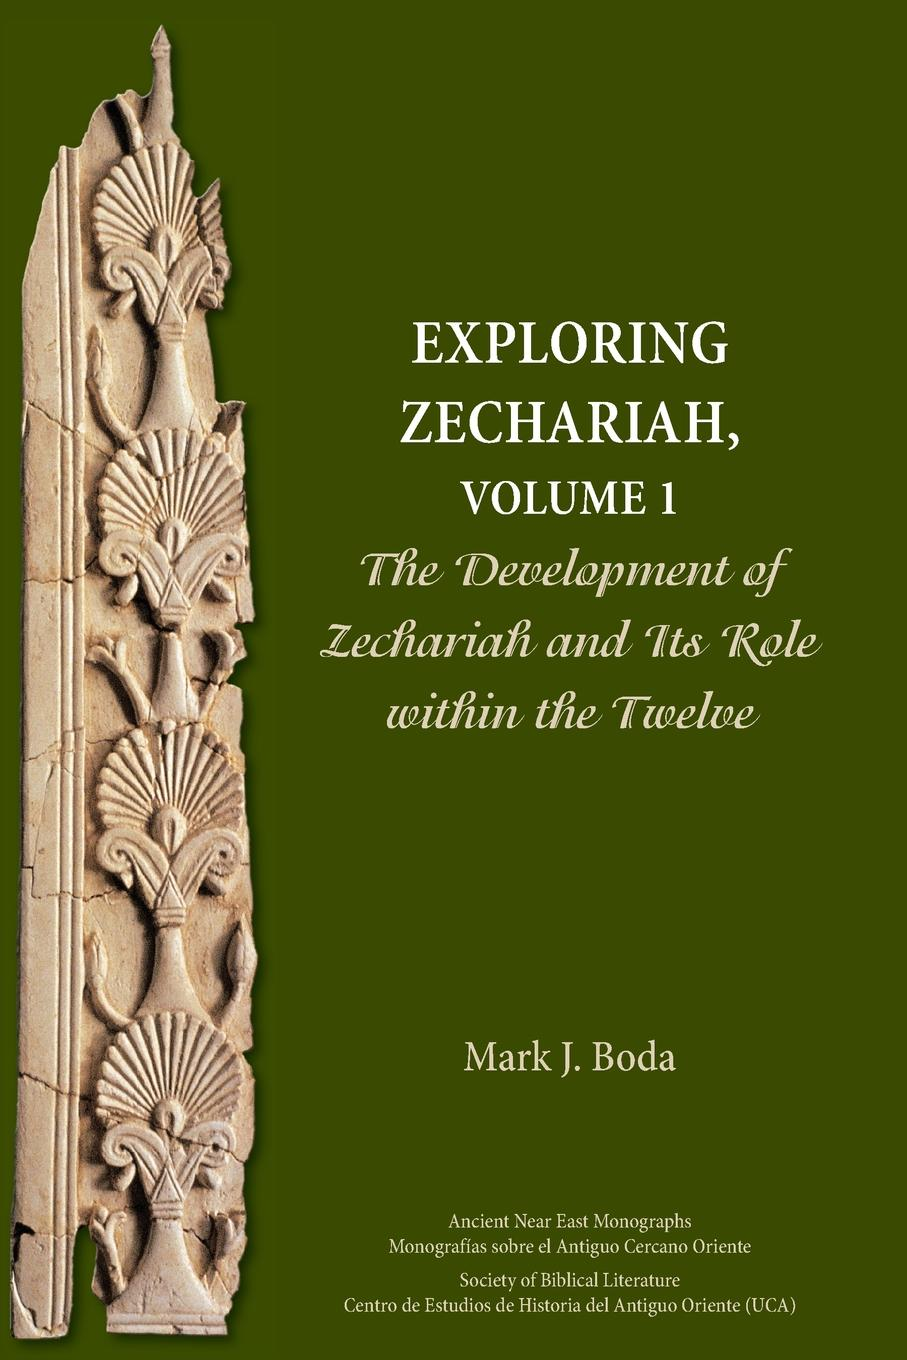 Mark J. Boda Exploring Zechariah, Volume 1. The Development of Zechariah and Its Role within the Twelve mark j boda exploring zechariah volume 2 the development and role of biblical traditions in zechariah